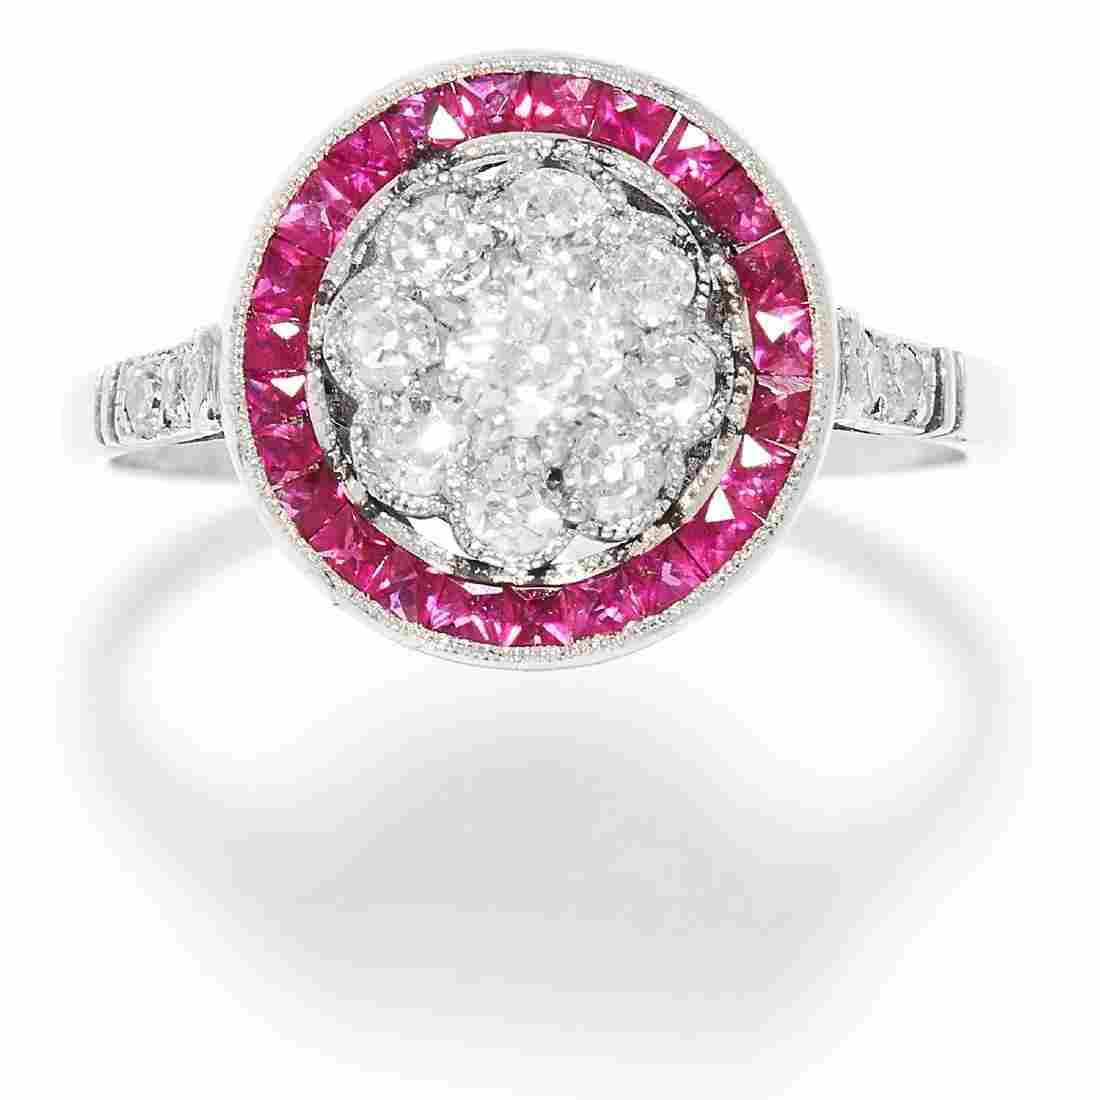 ART DECO DIAMOND AND RUBY RING in platinum or white